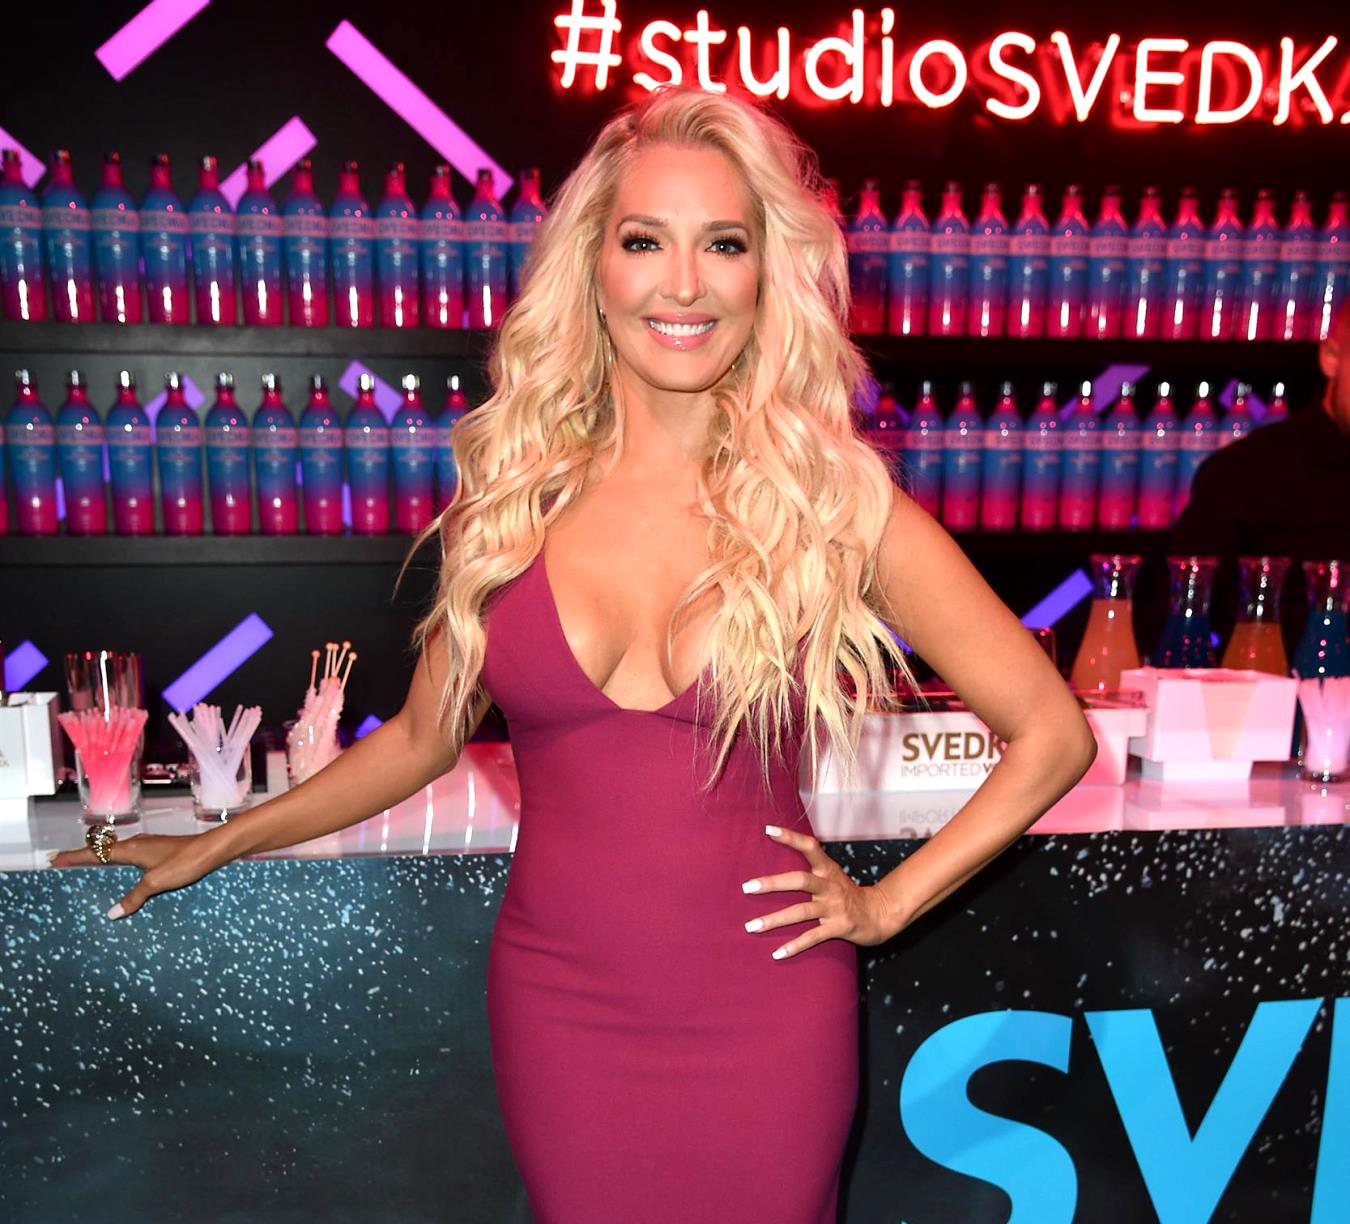 'RHOBH' Erika Jayne Claps Back at Criticism Over TJ Maxx Shopping Trip Photos as Tom Girardi's Bankruptcy Auction Only Brings in $231K For Alleged Victims and Creditors'RHOBH' Erika Jayne Claps Back at Criticism Over TJ Maxx Shopping Trip Photos as Tom Girardi's Bankruptcy Auction Only Brings in $231K For Alleged Victims and Creditors